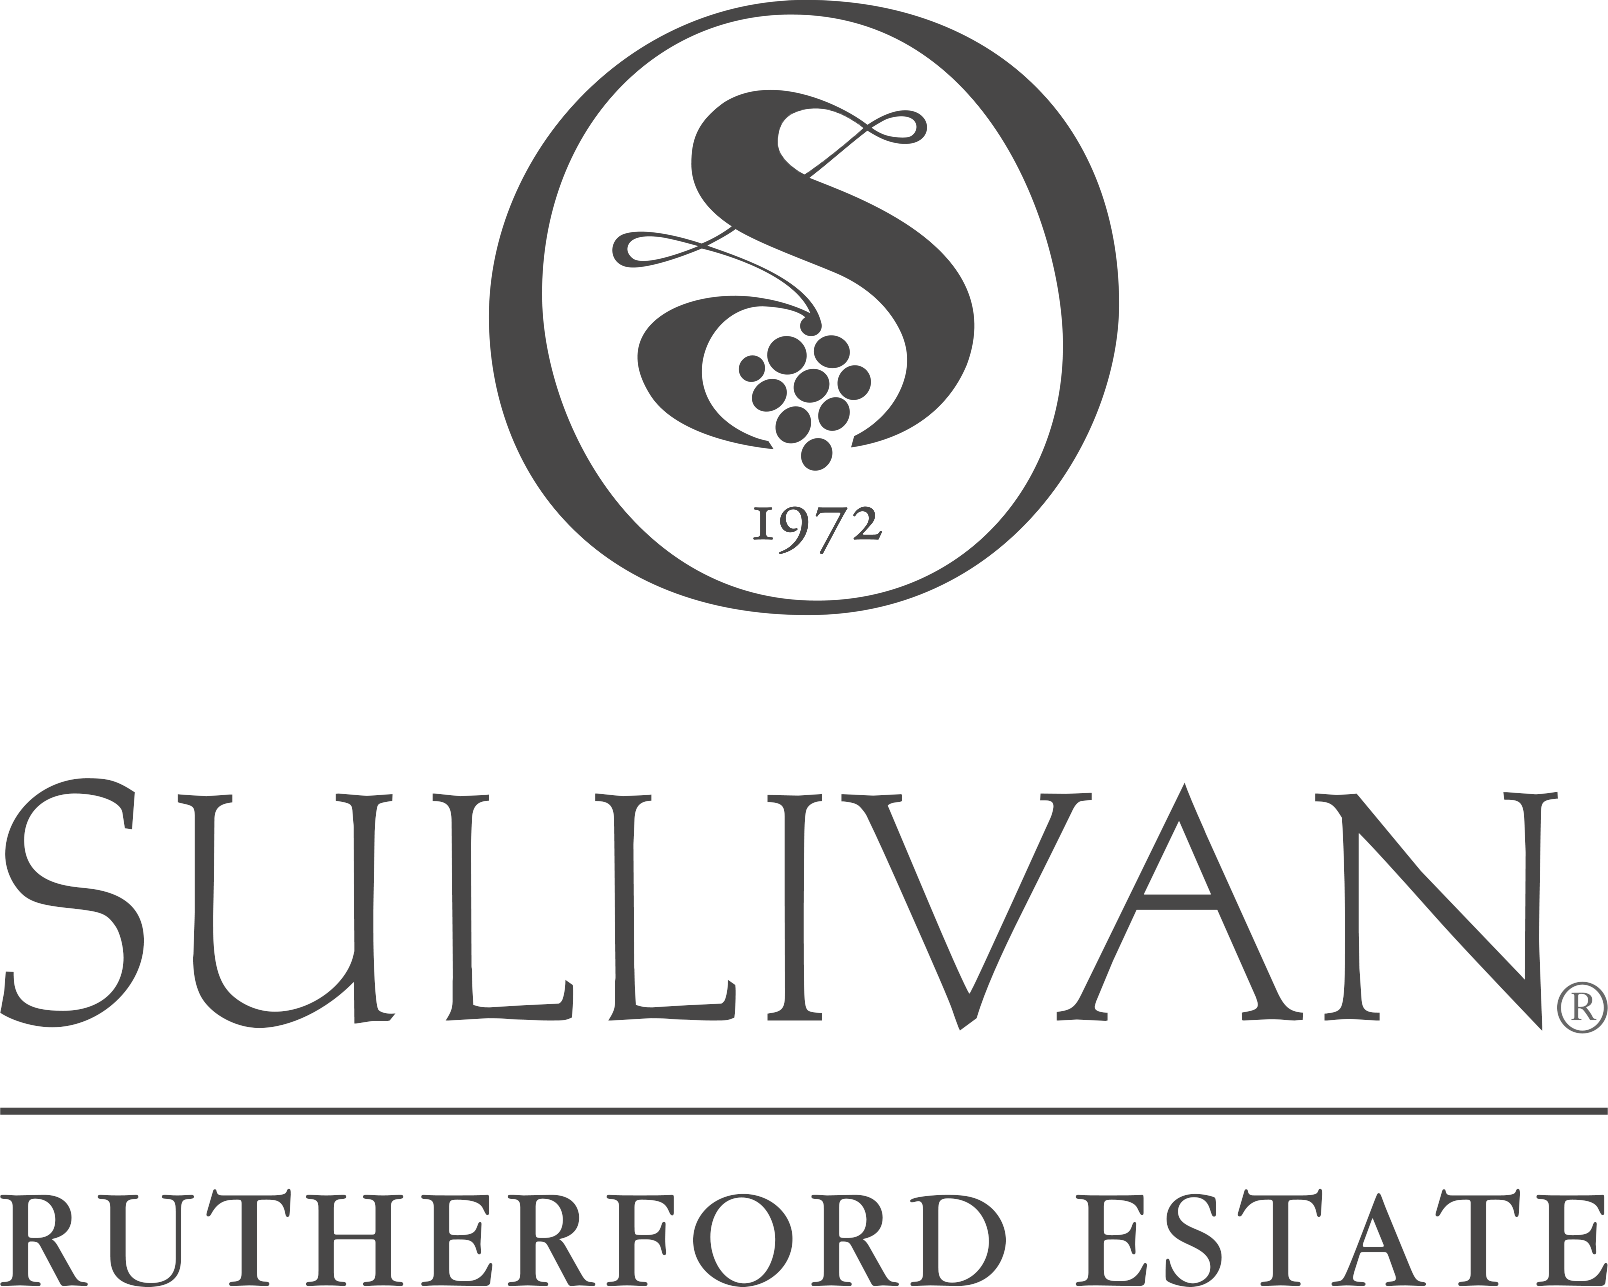 Sullivan Rutherford Estate